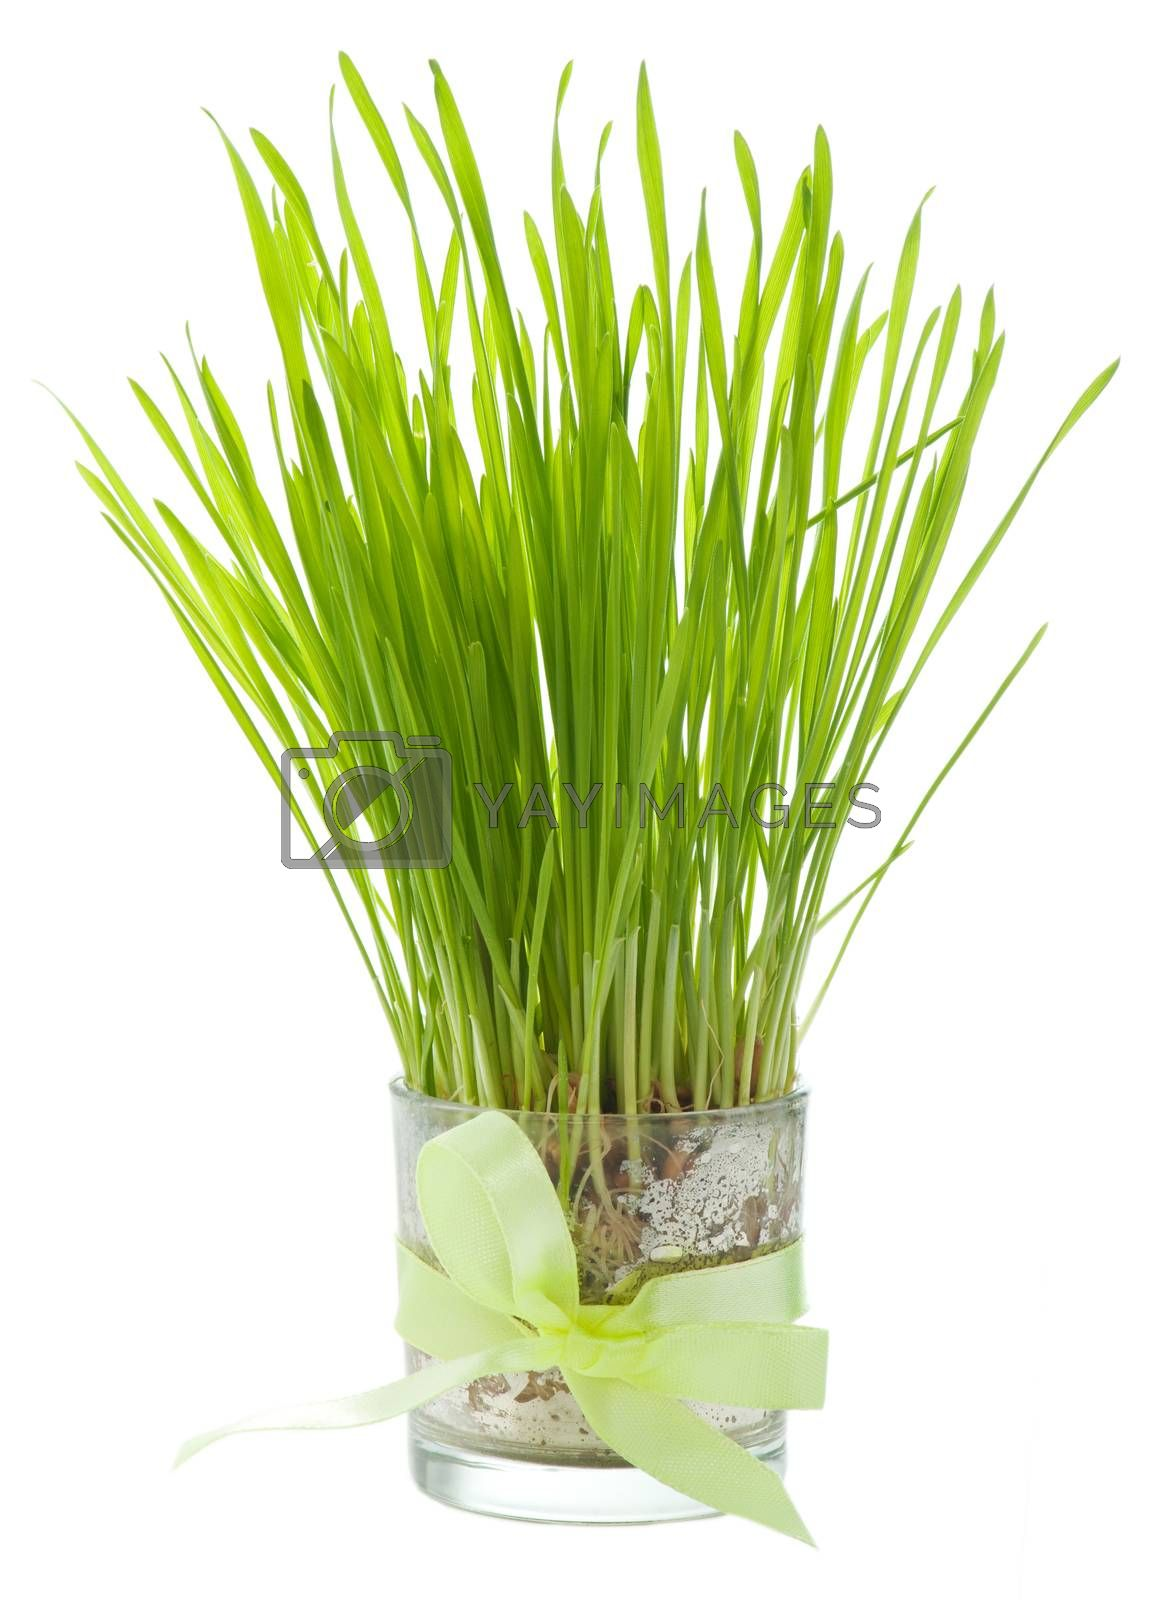 Green grass in a glass tied with a ribbon isolated on white